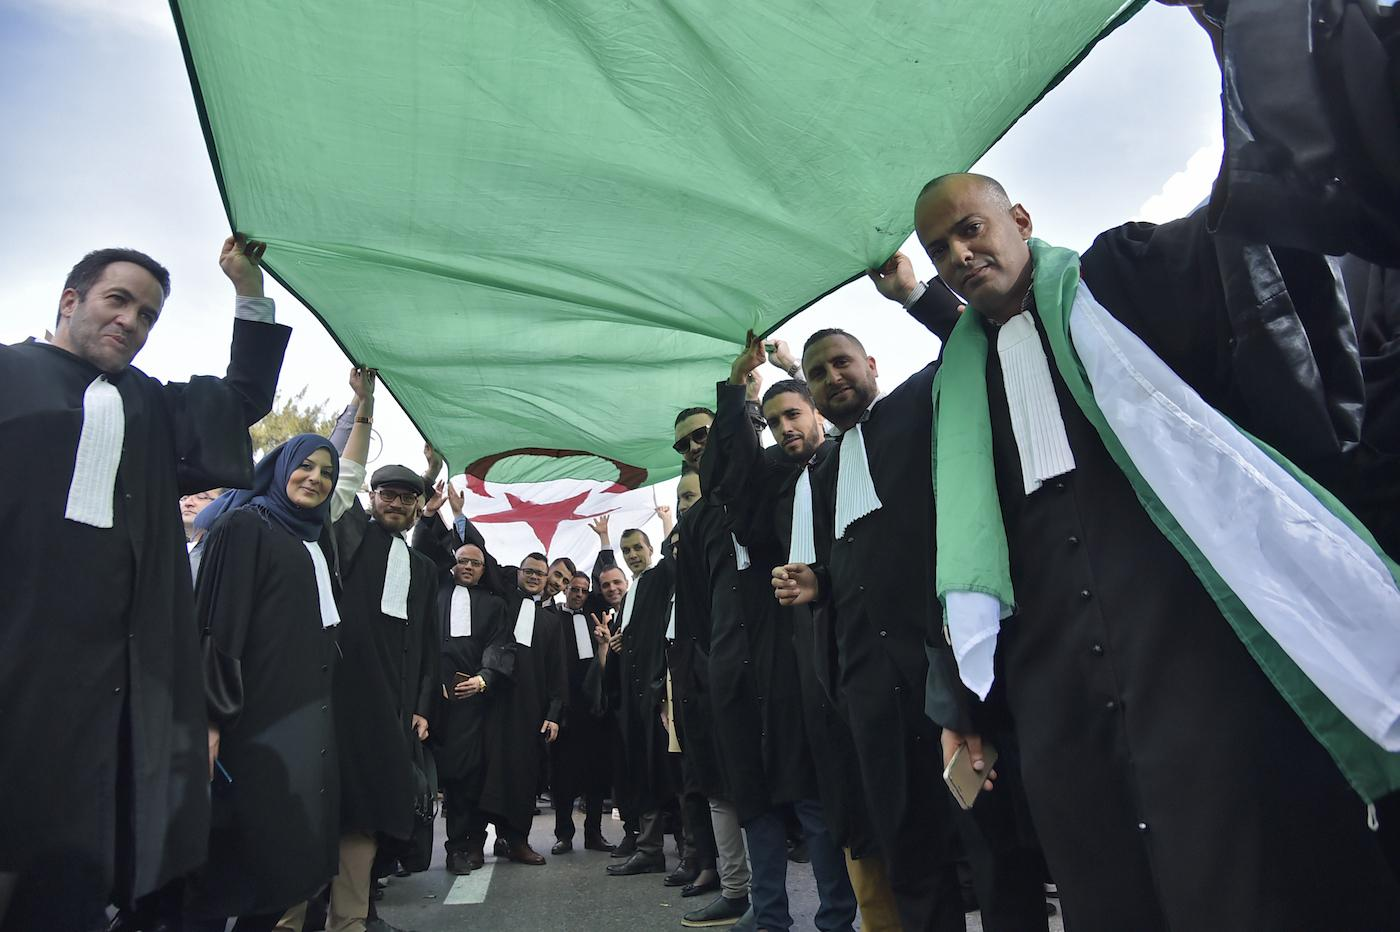 Lawyers protest against Abdelaziz Bouteflika's candidacy in Algiers on 7 March (AFP)